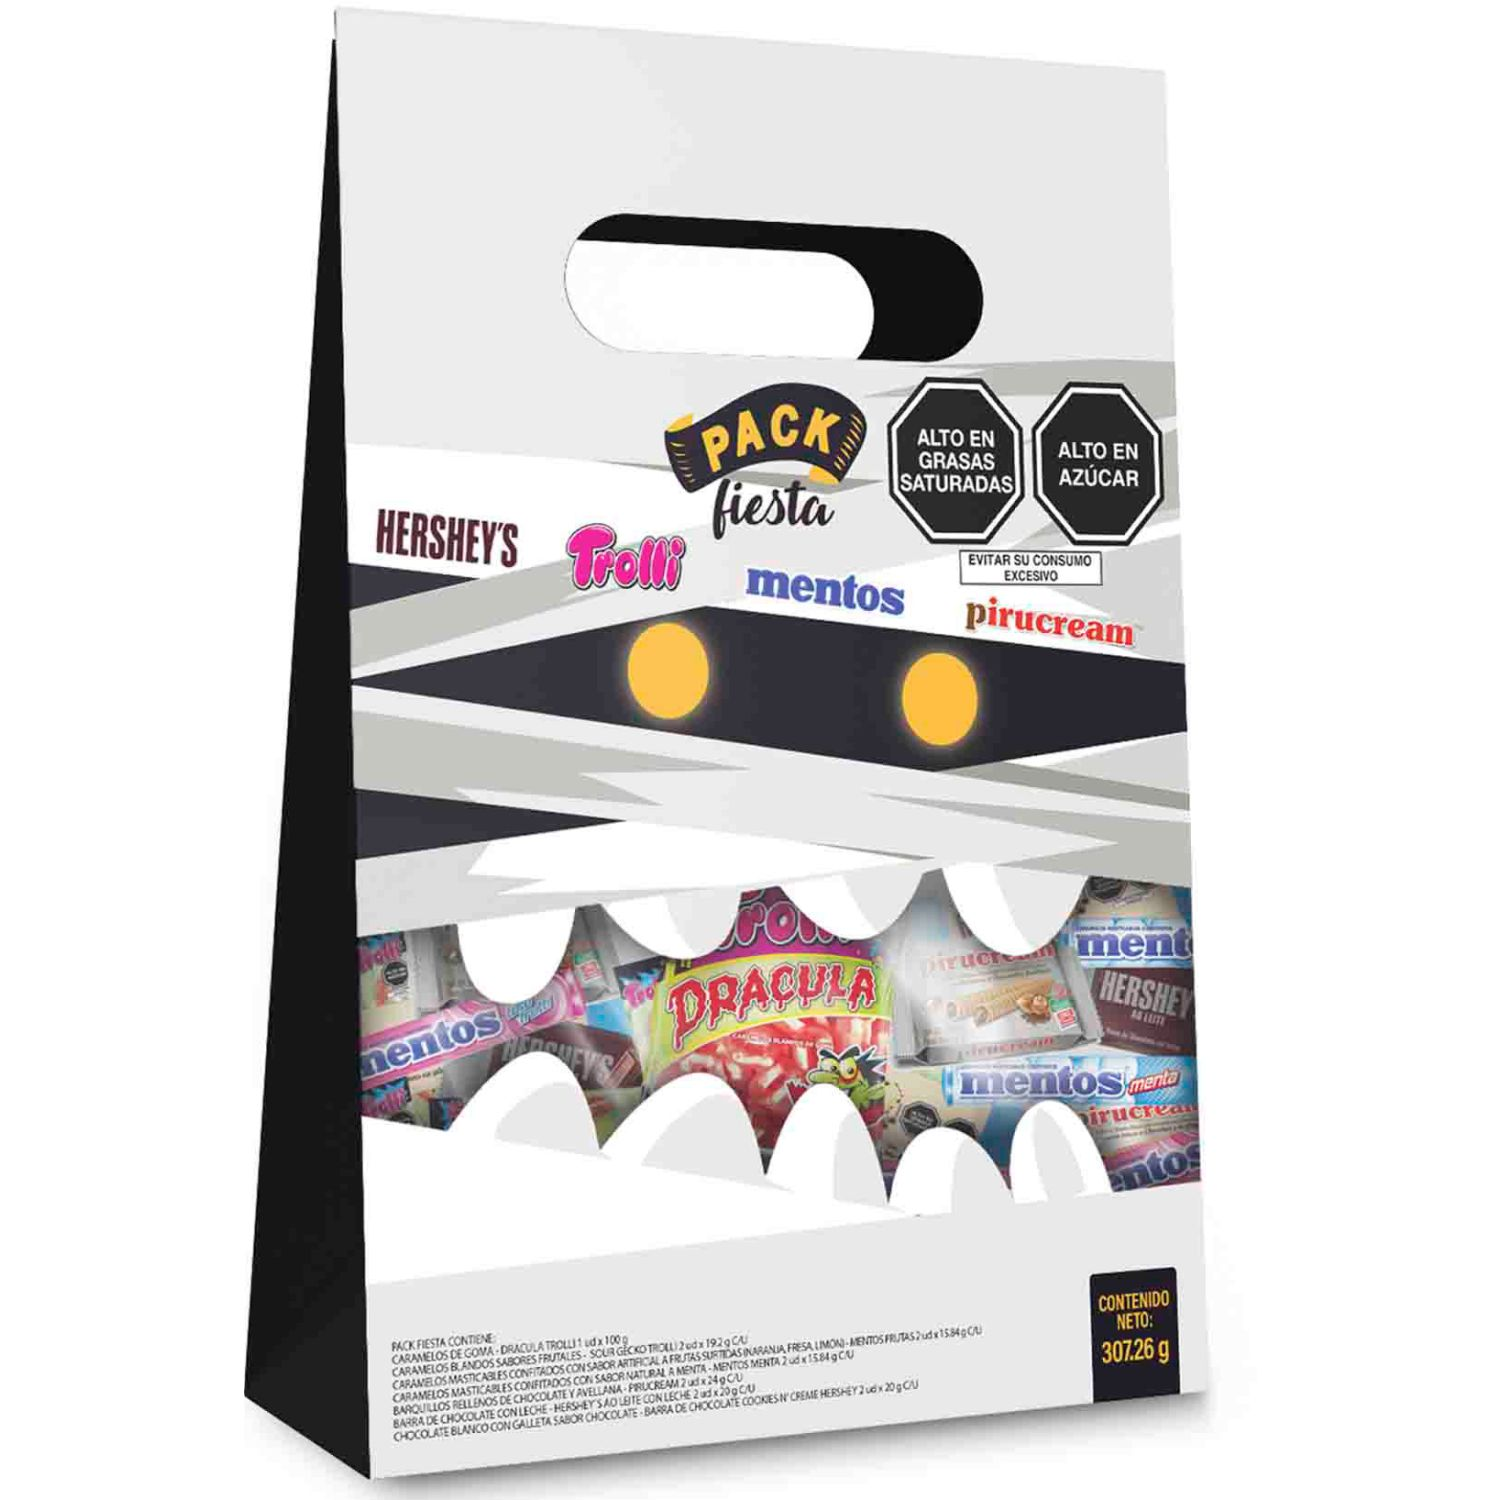 HERSHEY'S Pack Fiesta Halloween Sin color Surtidos de dulces y chocolate